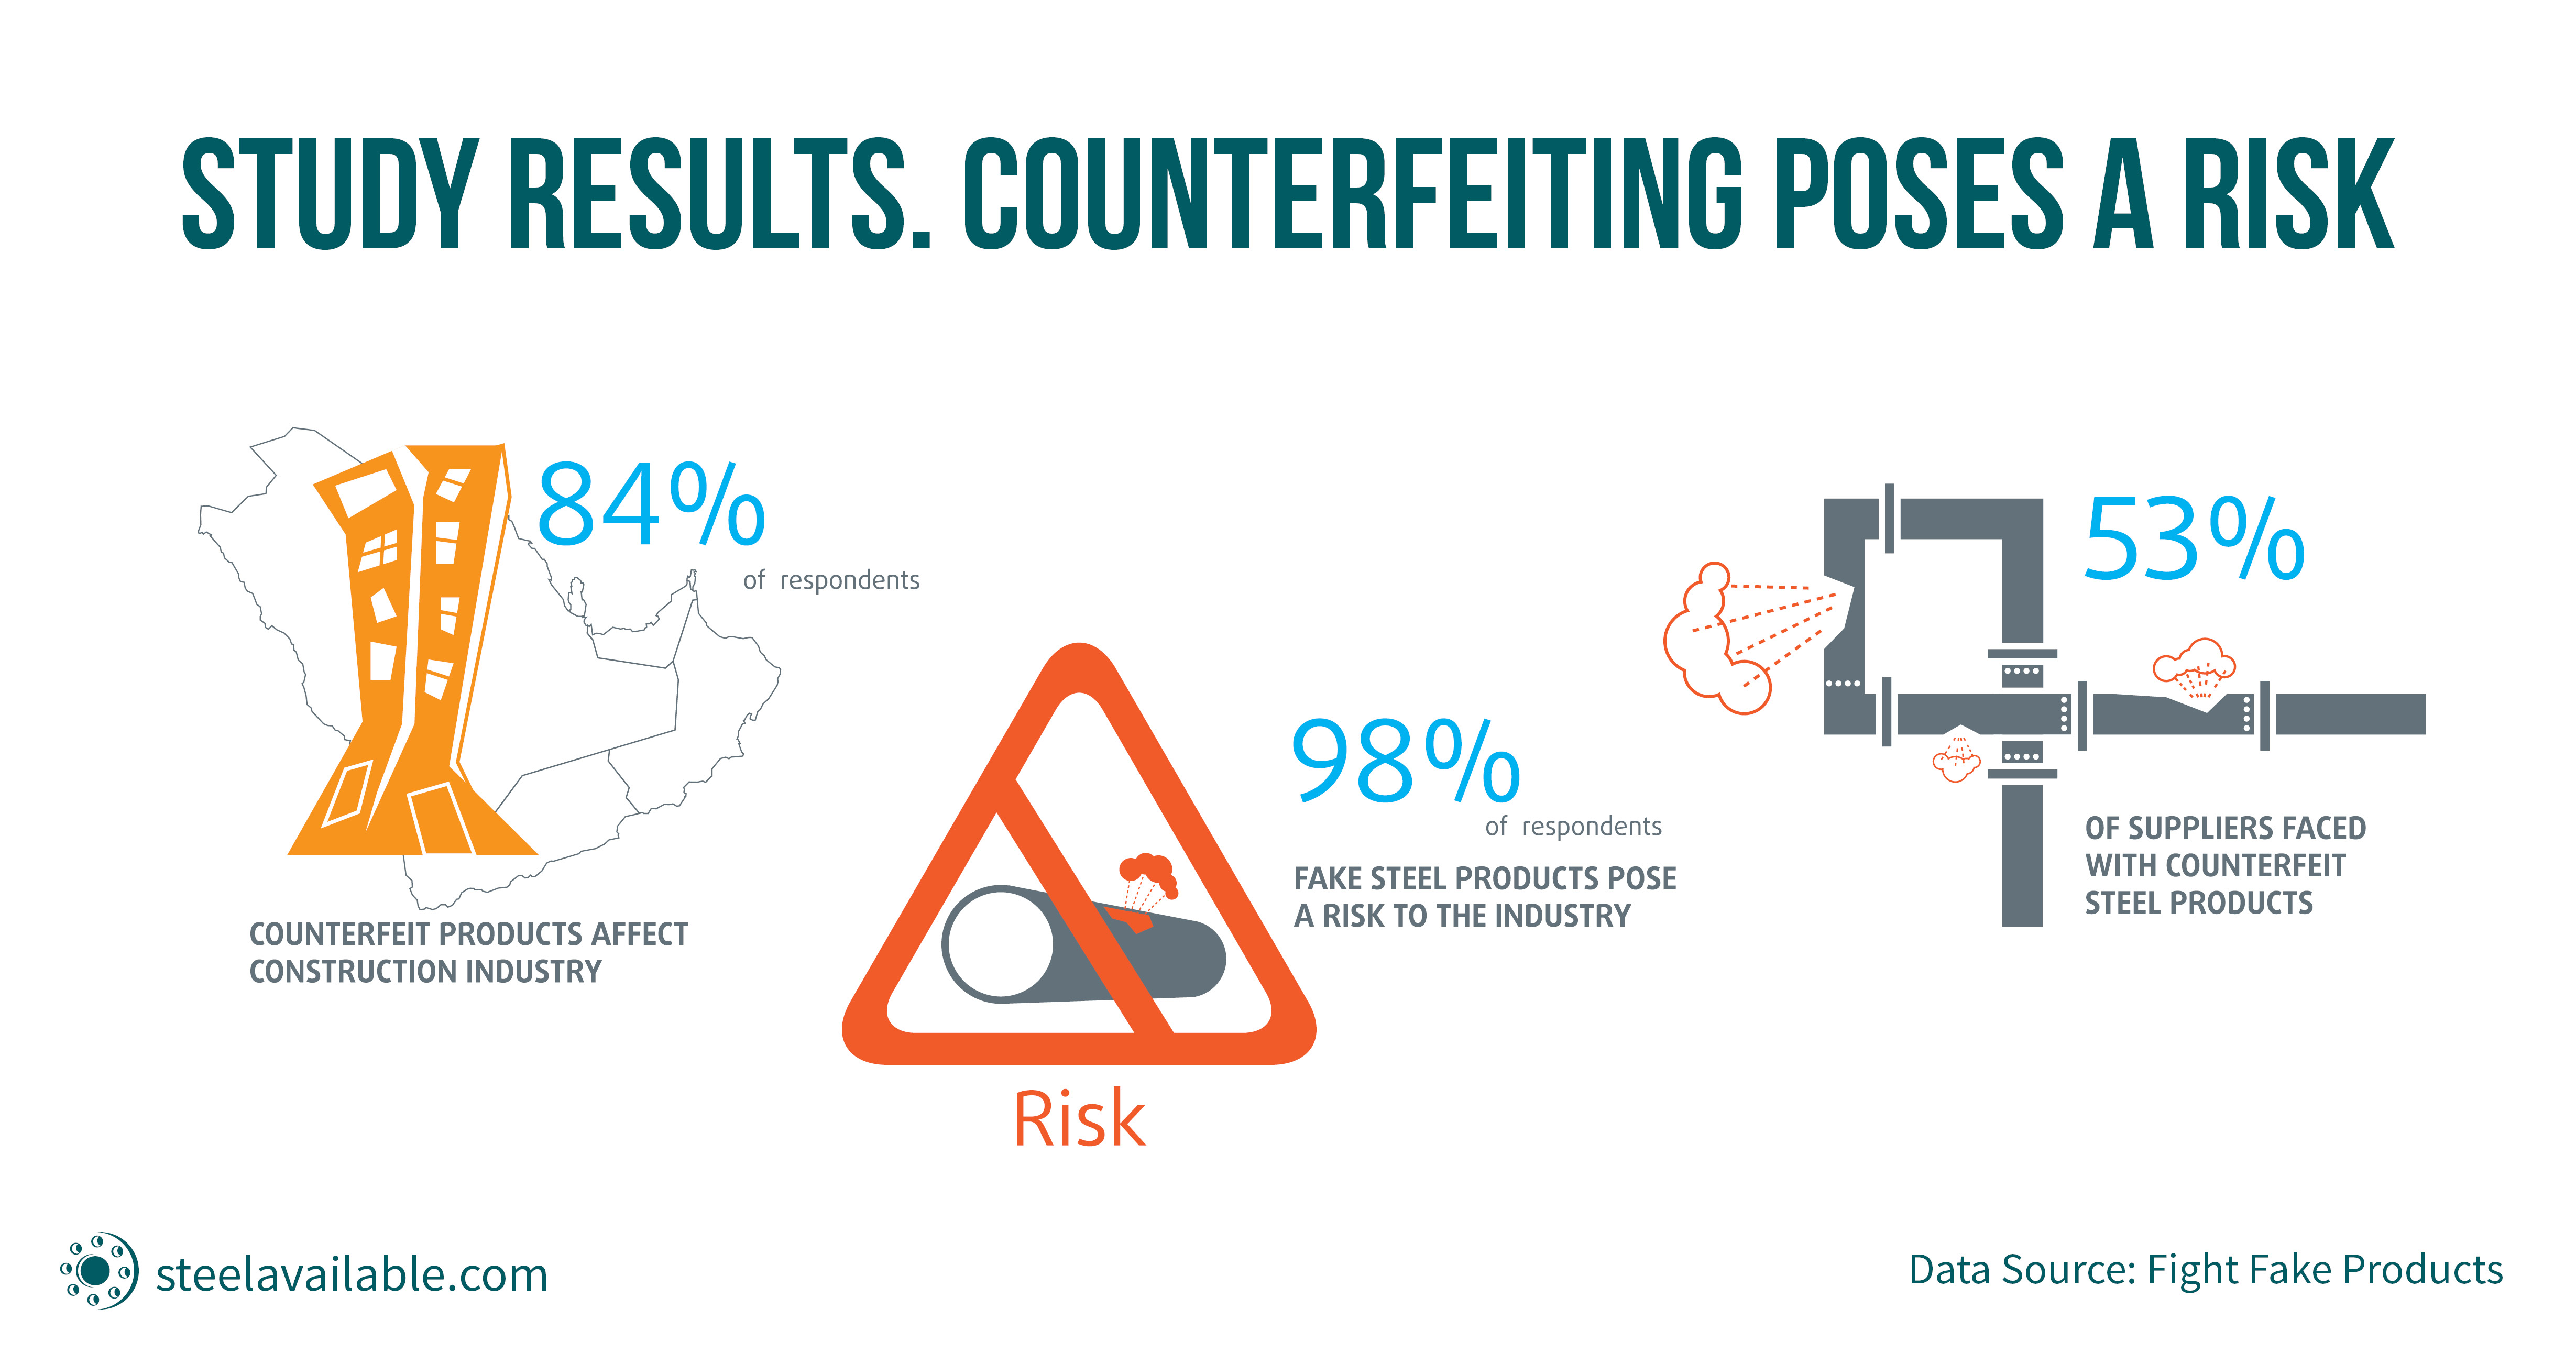 counterfeiting poses a risk